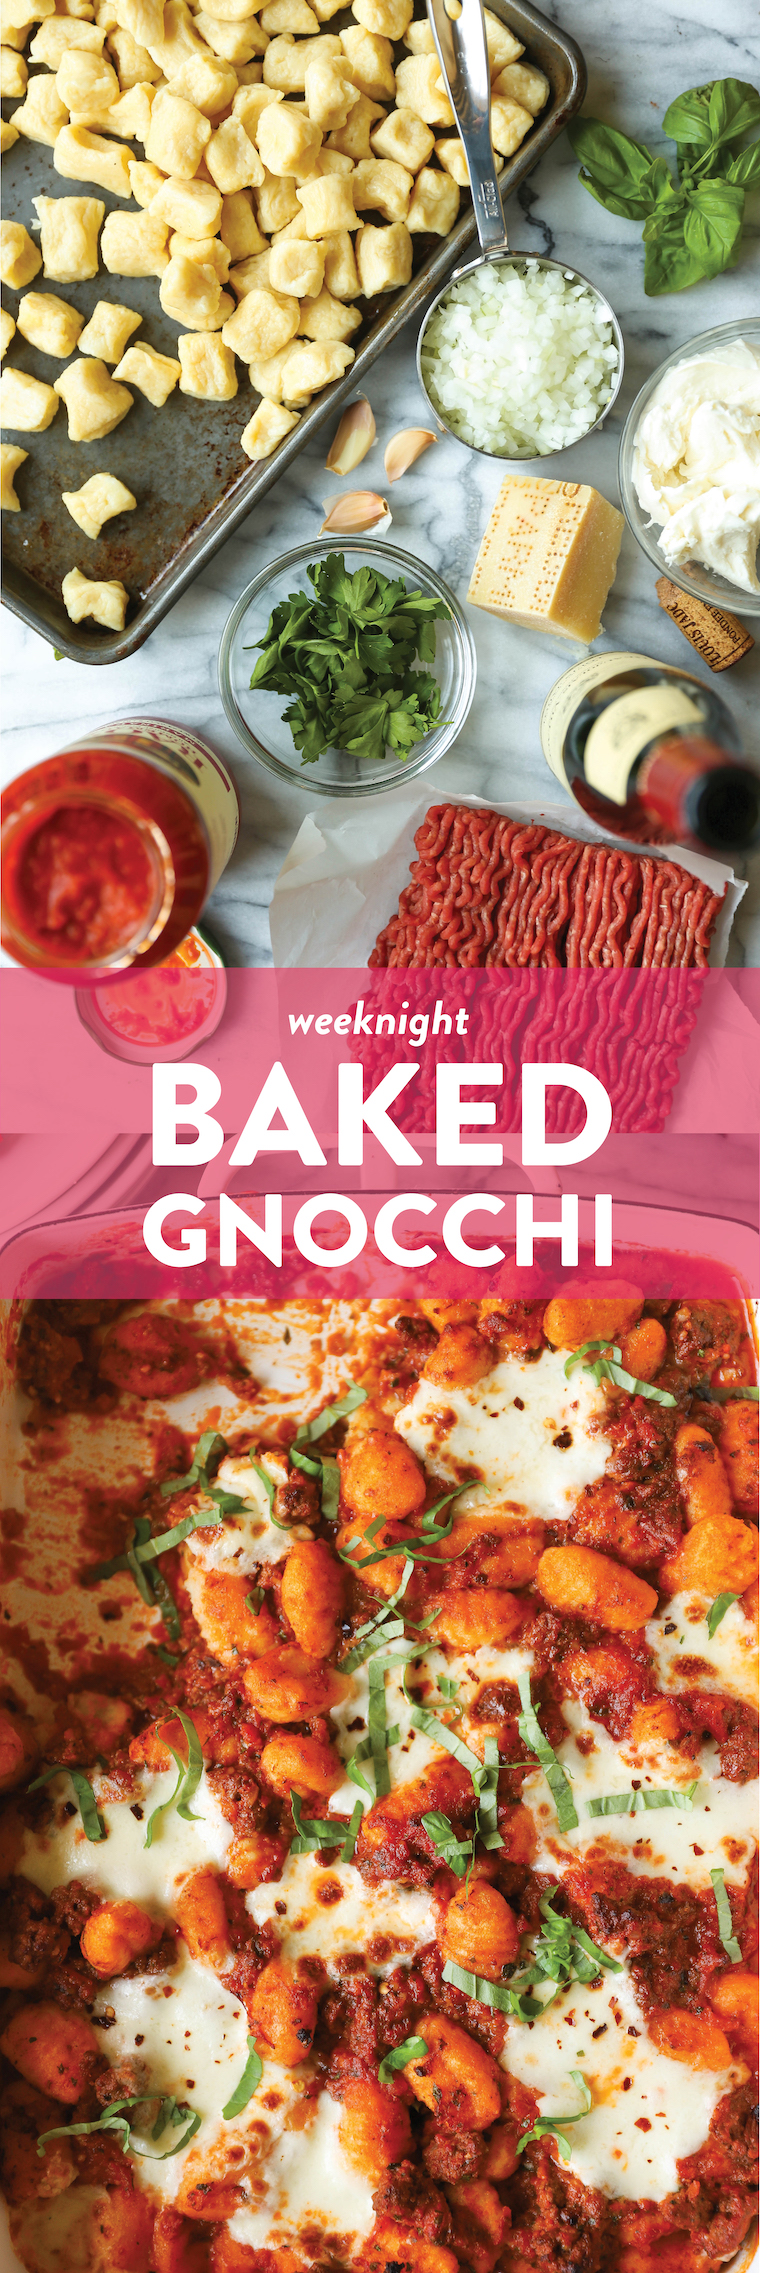 Weeknight Baked Gnocchi - Super simple, quick and easy with a very short ingredient list! SO GOOD, so comforting, and a sure hit with the entire family!